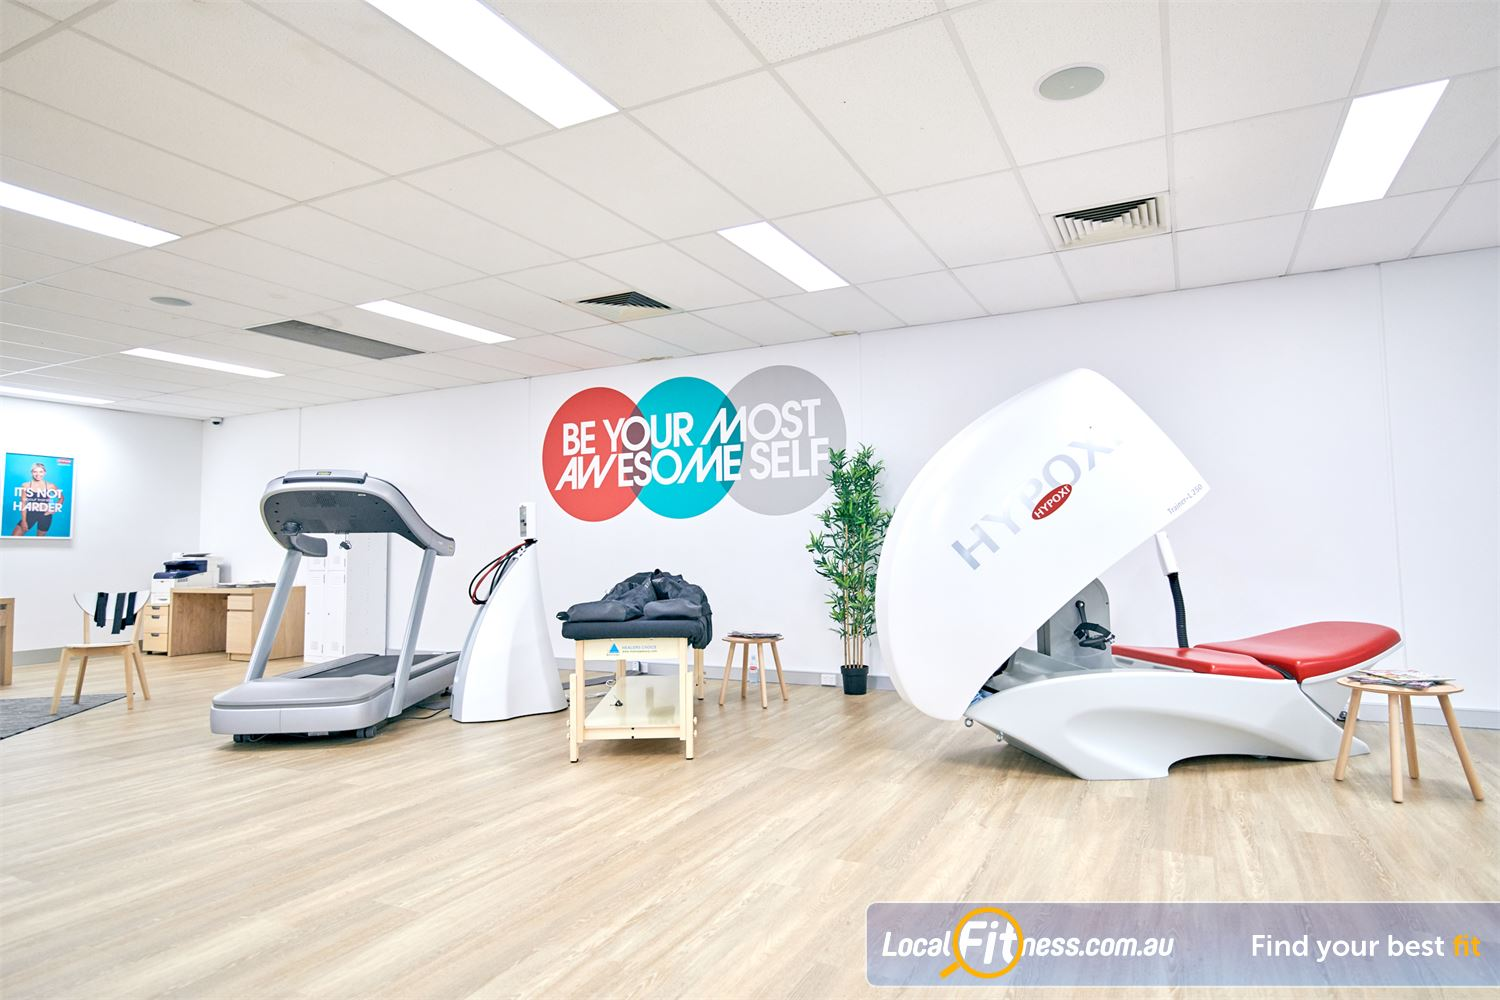 HYPOXI Weight Loss Myaree Our HYPOXI method can help with cellulite reduction in Myaree.